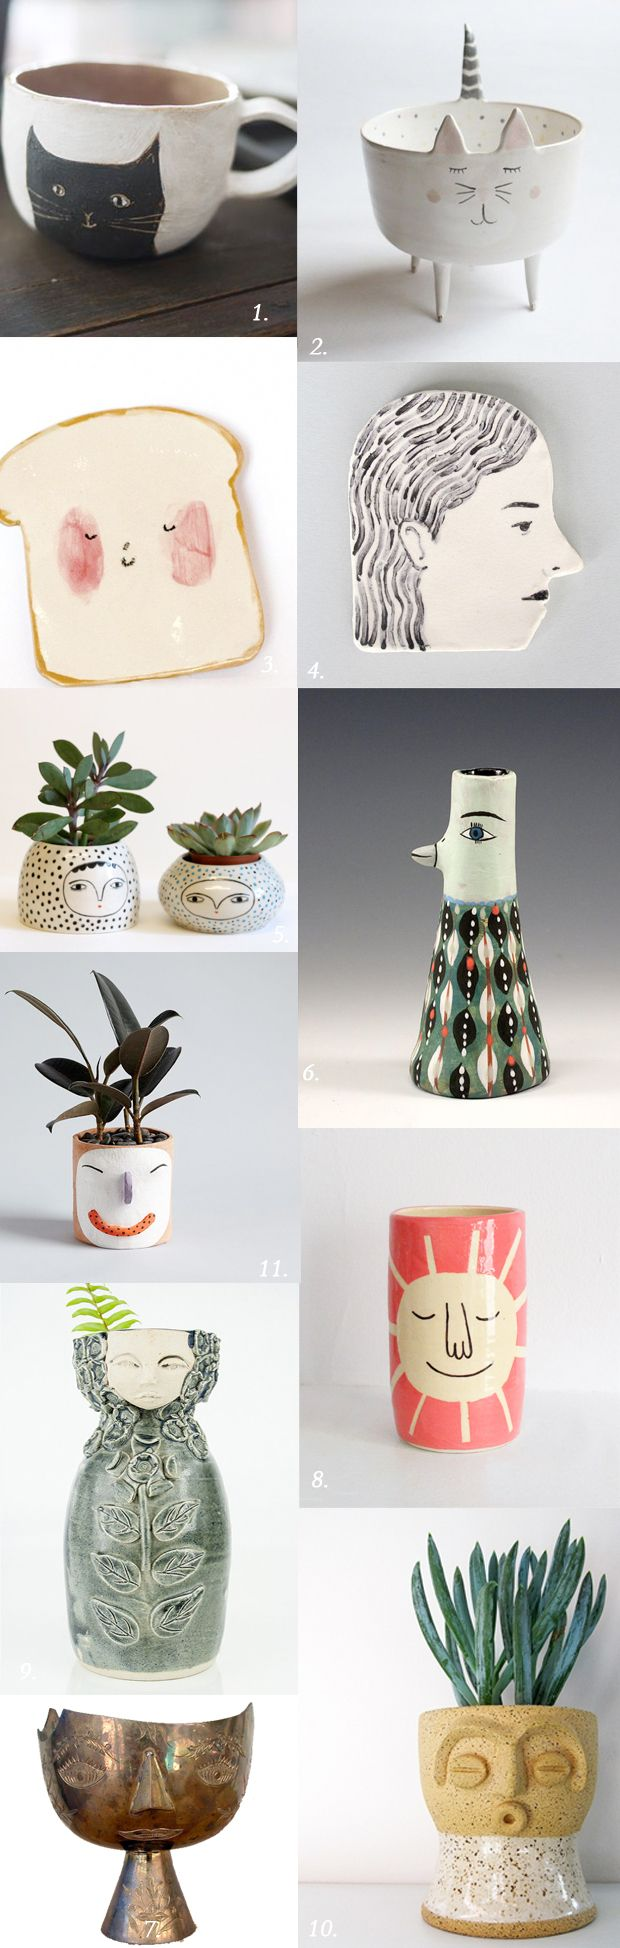 Ceramics / vessels with personality